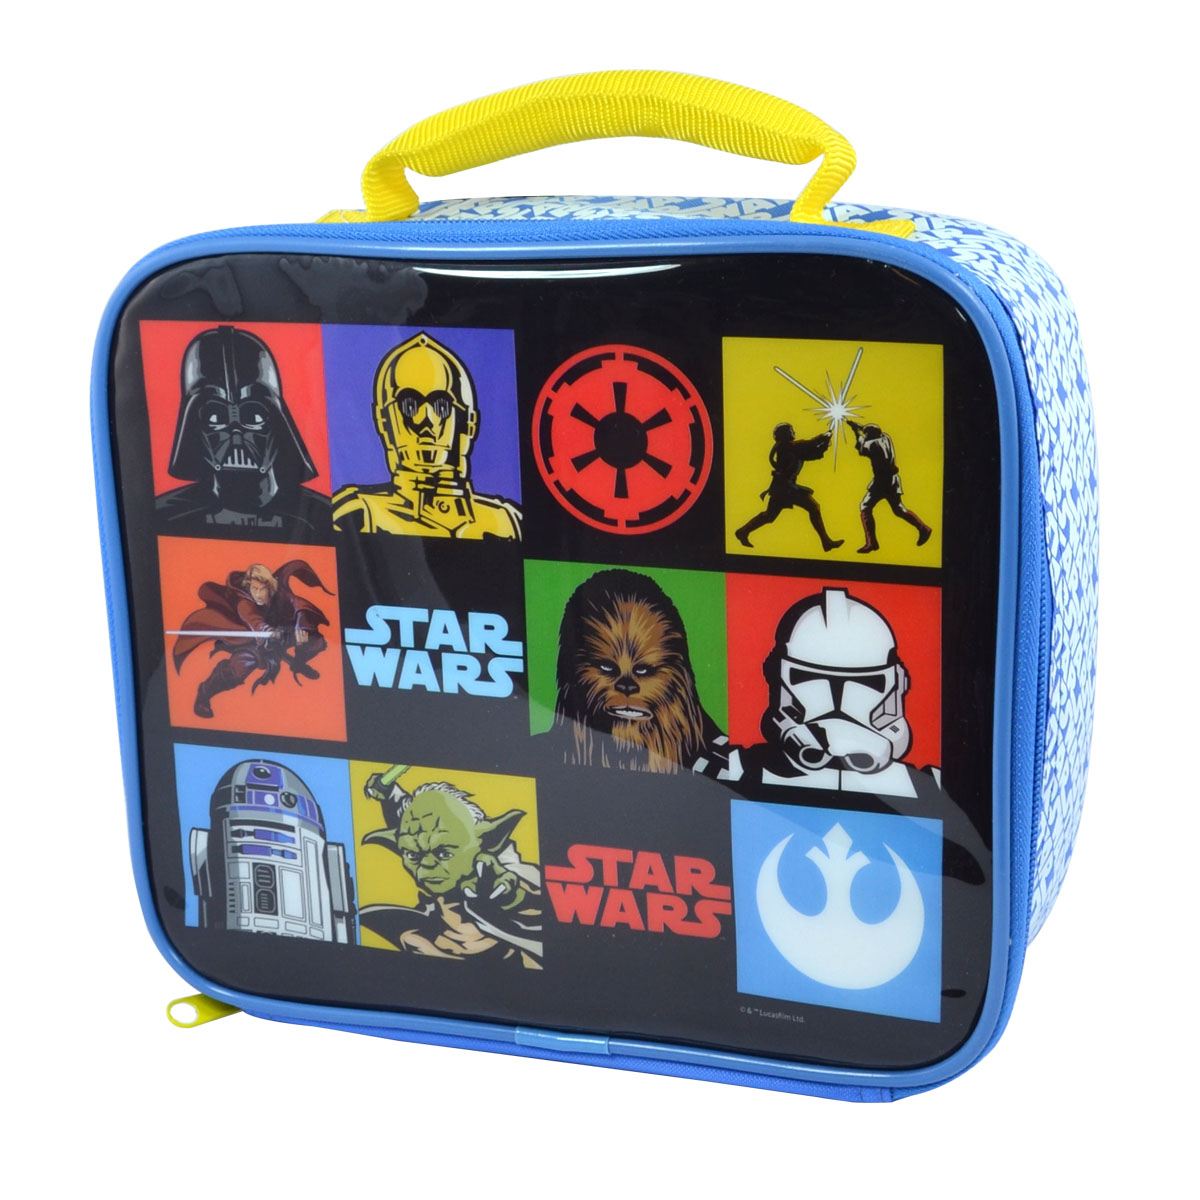 Star wars, the force awakens, lunch bag, dinner ware, back to school